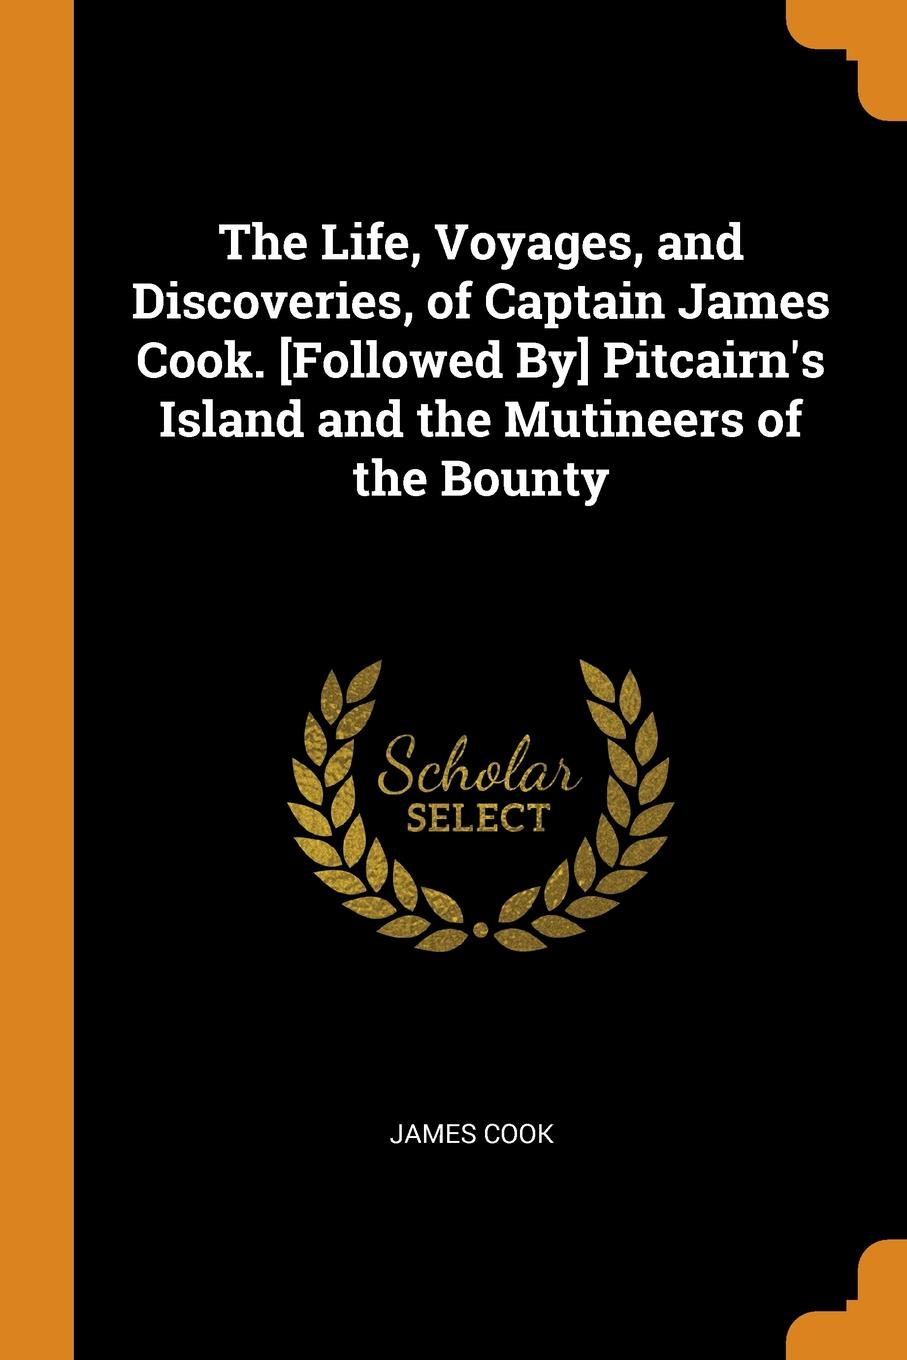 The Life, Voyages, and Discoveries, of Captain James Cook. .Followed By. Pitcairn.s Island and the Mutineers of the Bounty